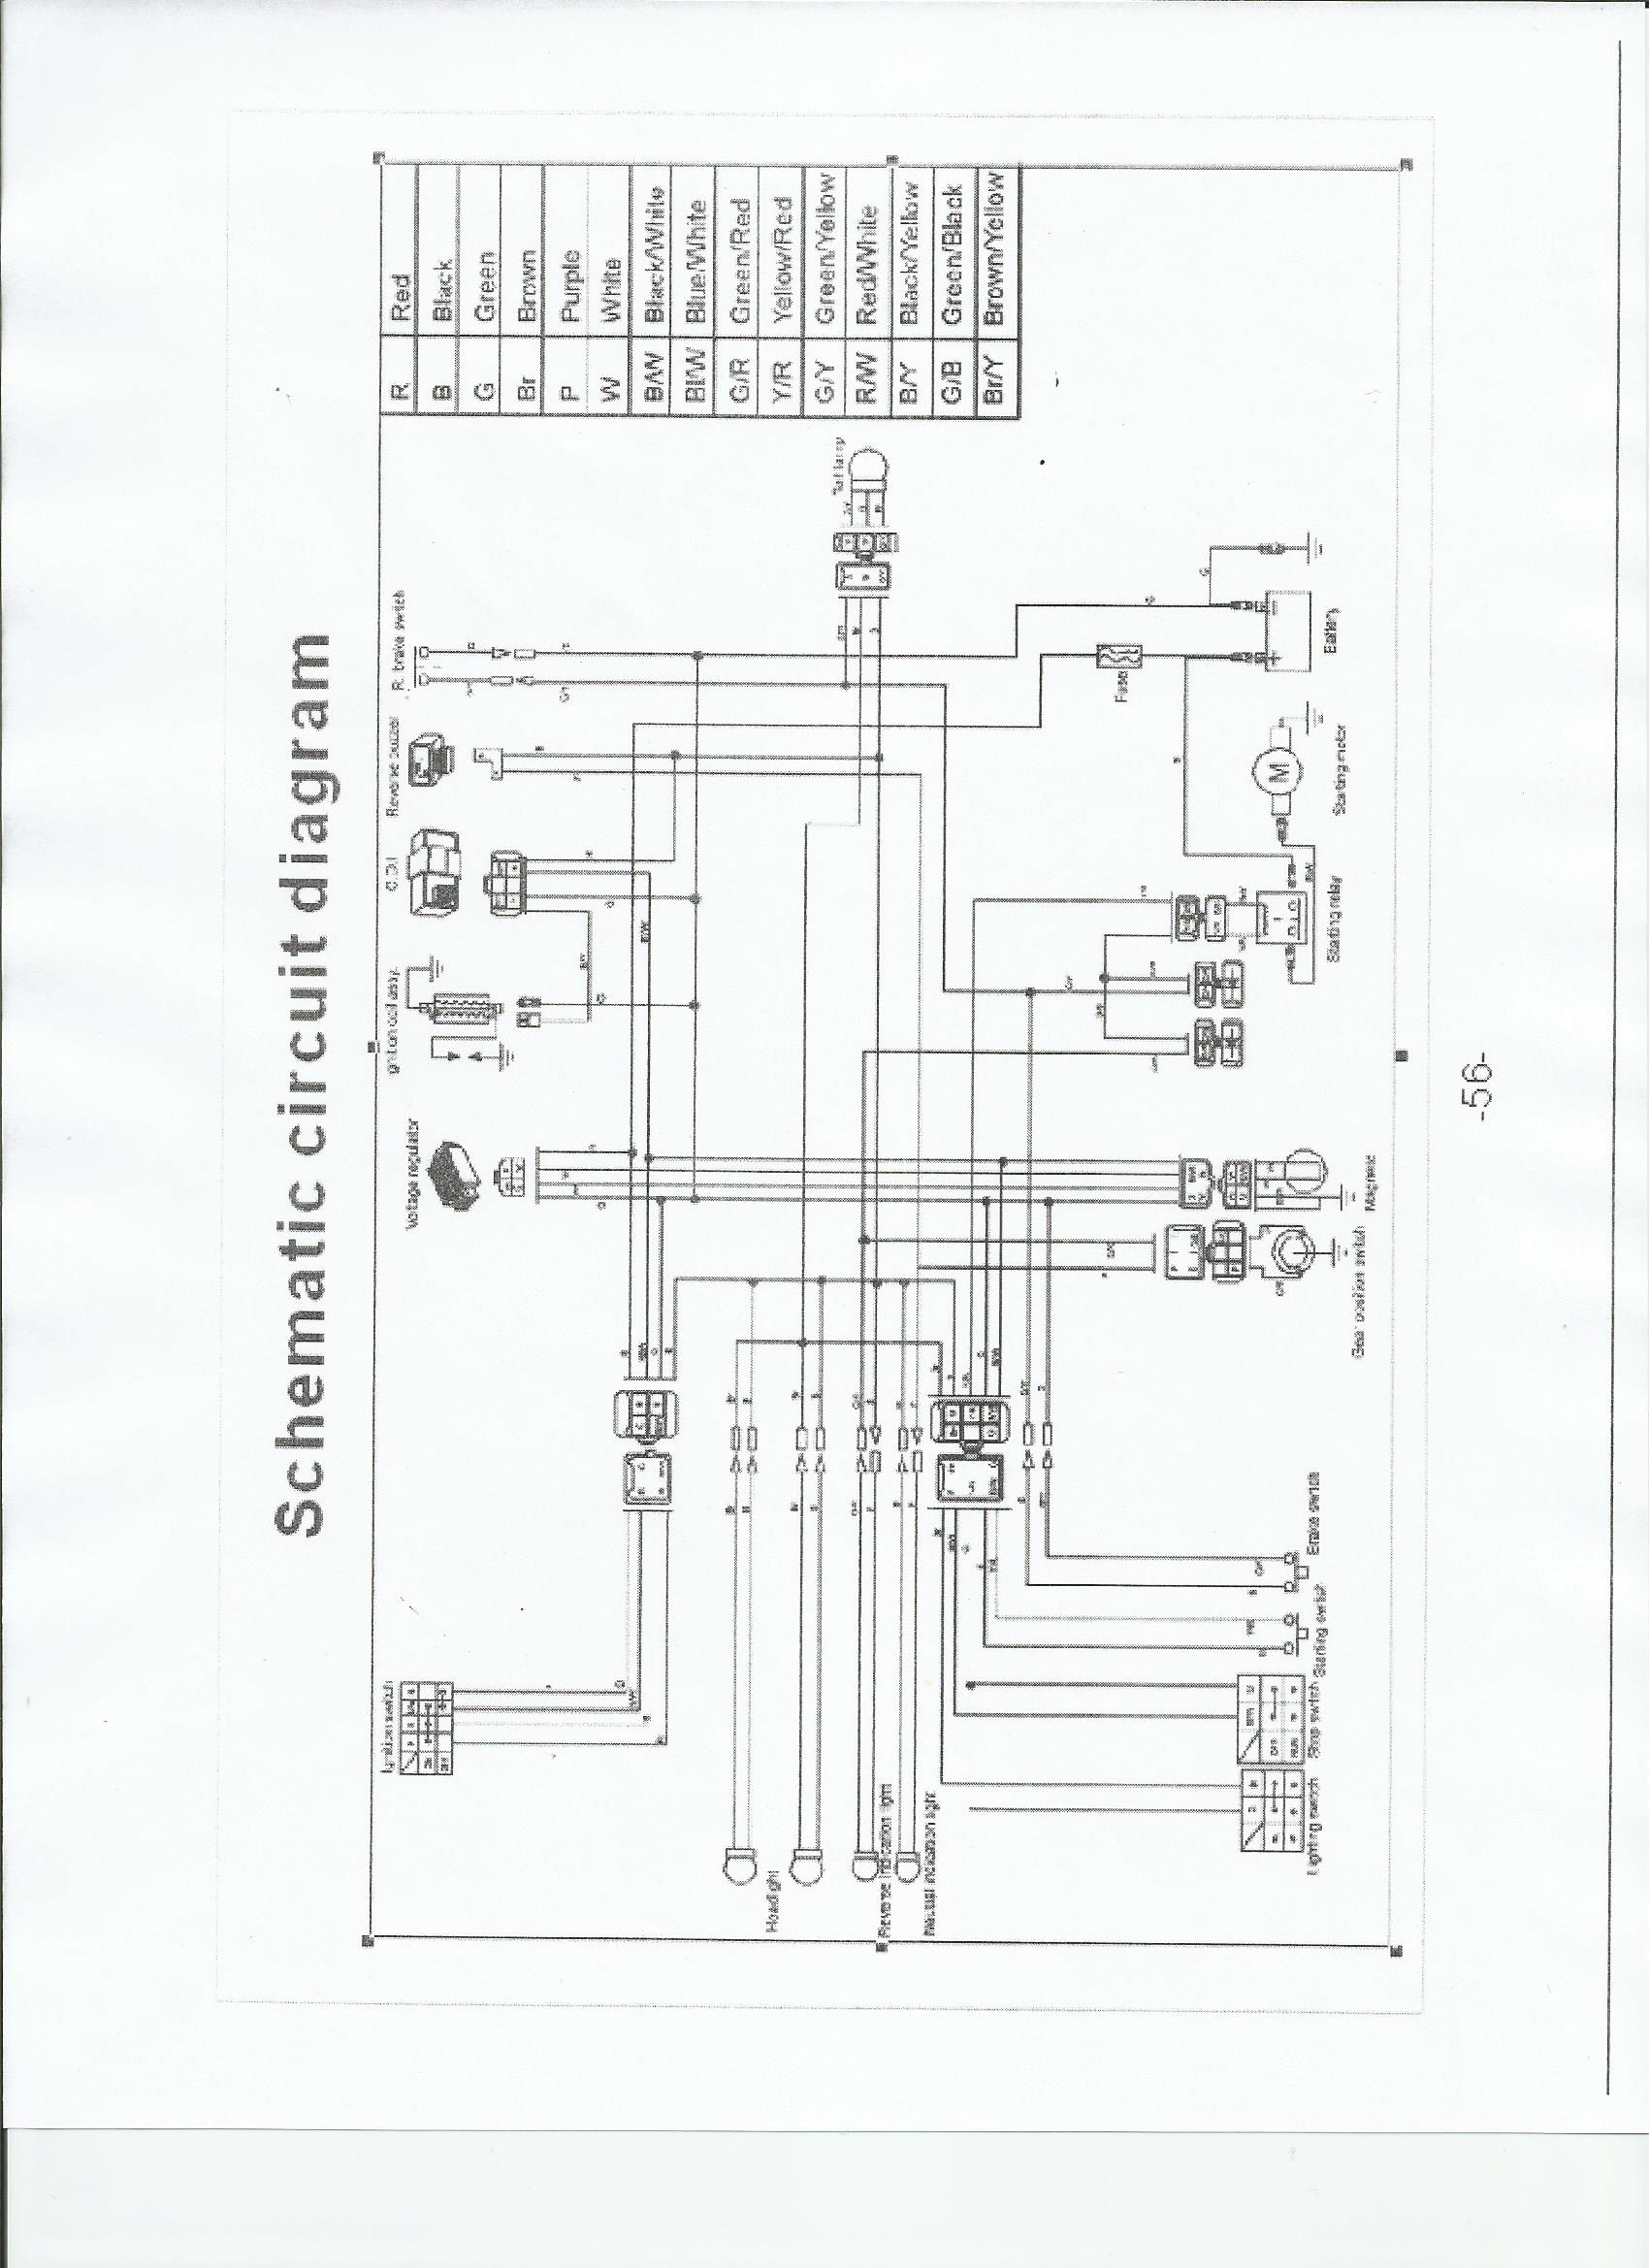 roketa atv wiring diagram download wiring diagram